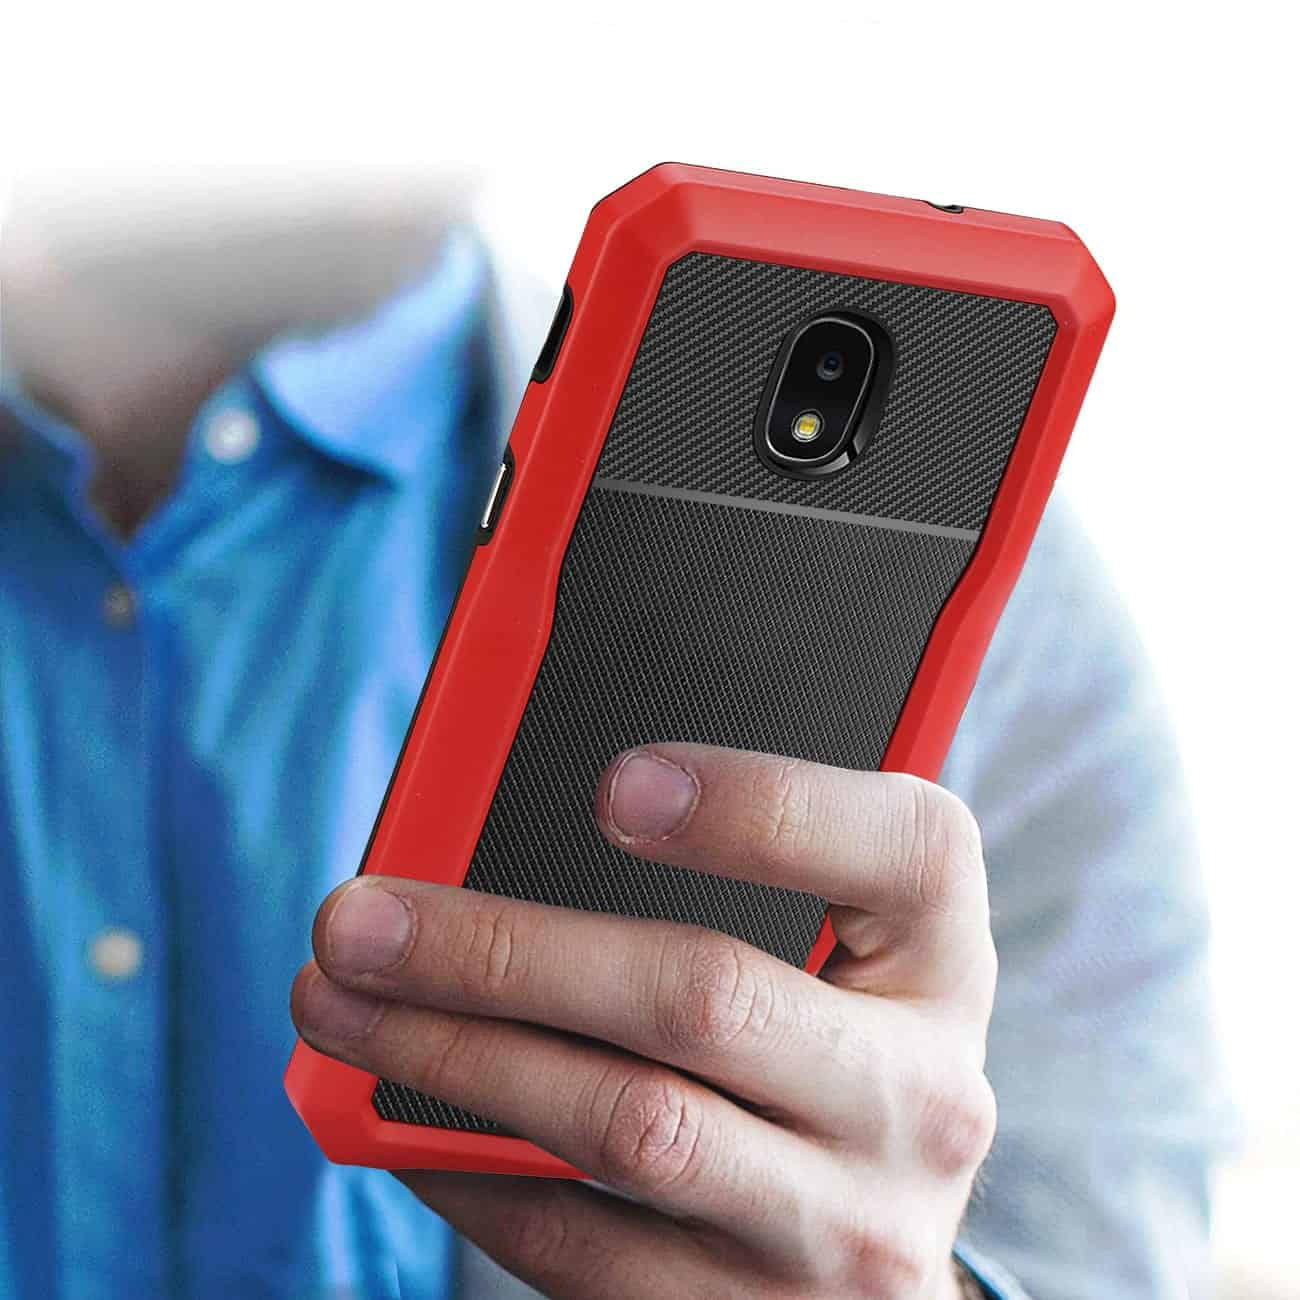 SAMSUNG GALAXY J7 (2018) Full Coverage Shockproof Case In Red